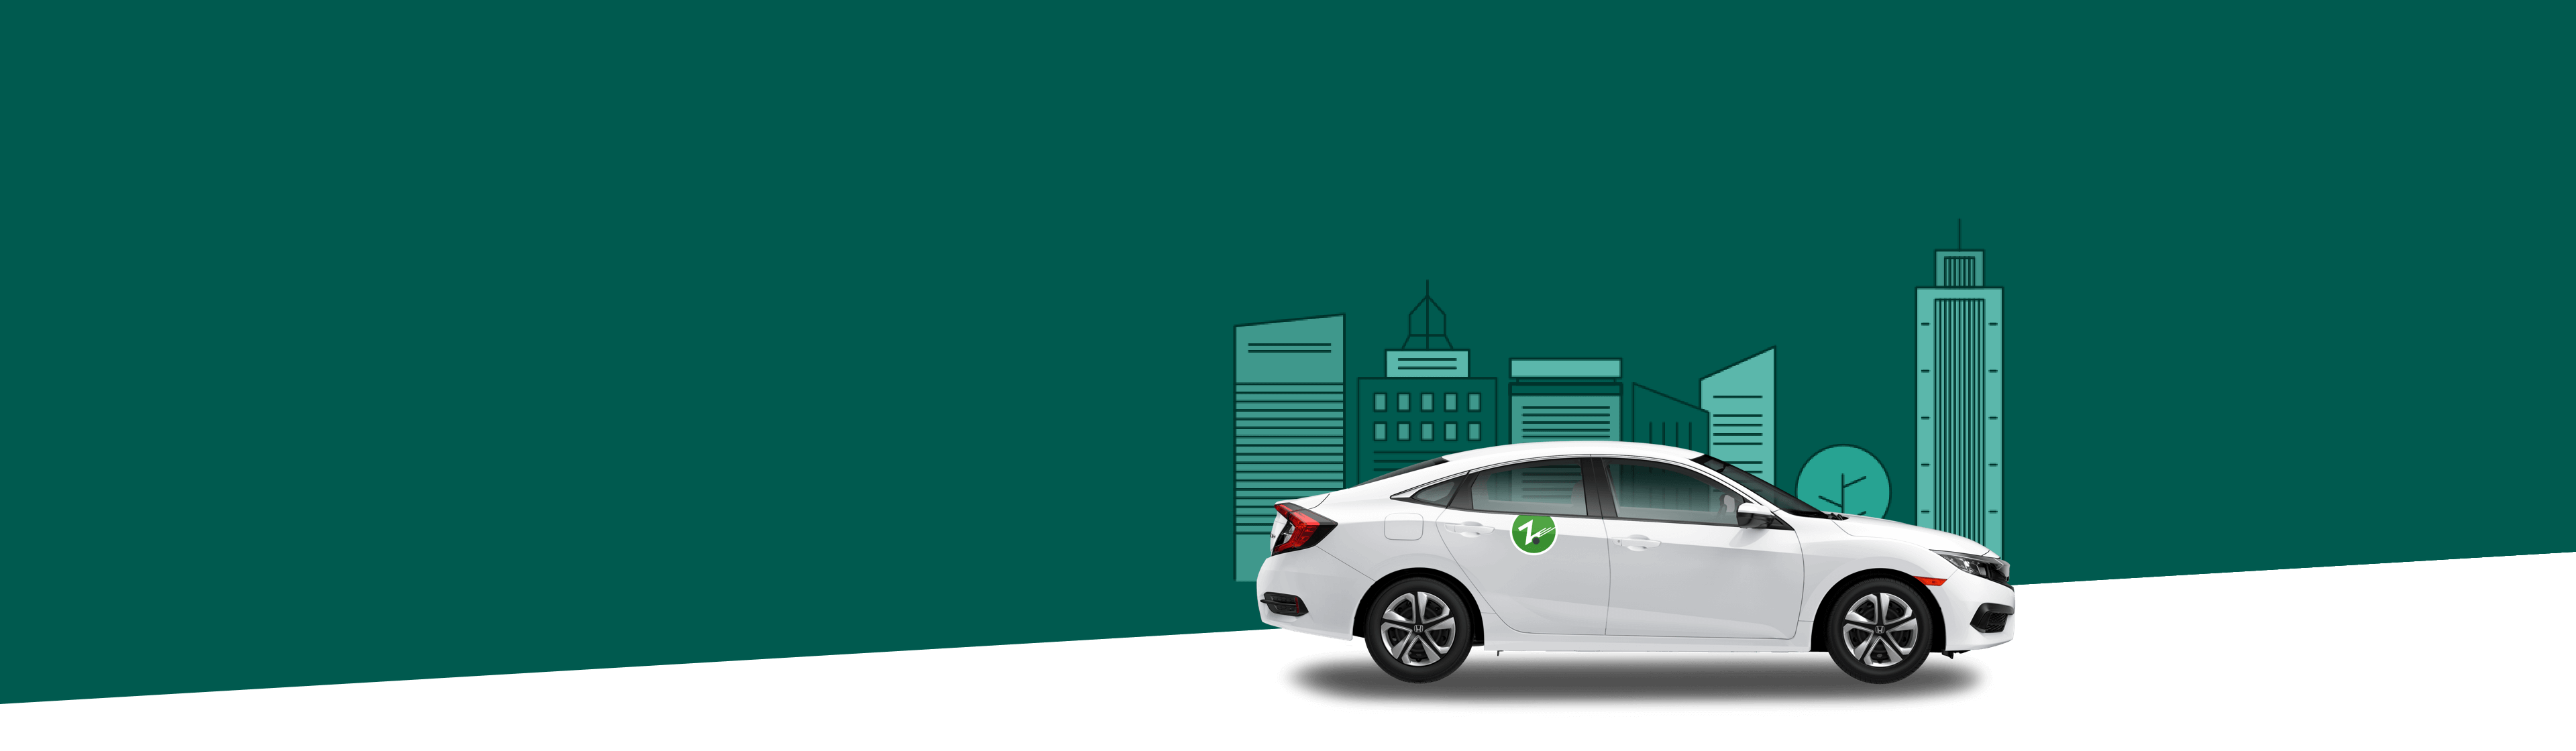 white Zipcar on dark green background